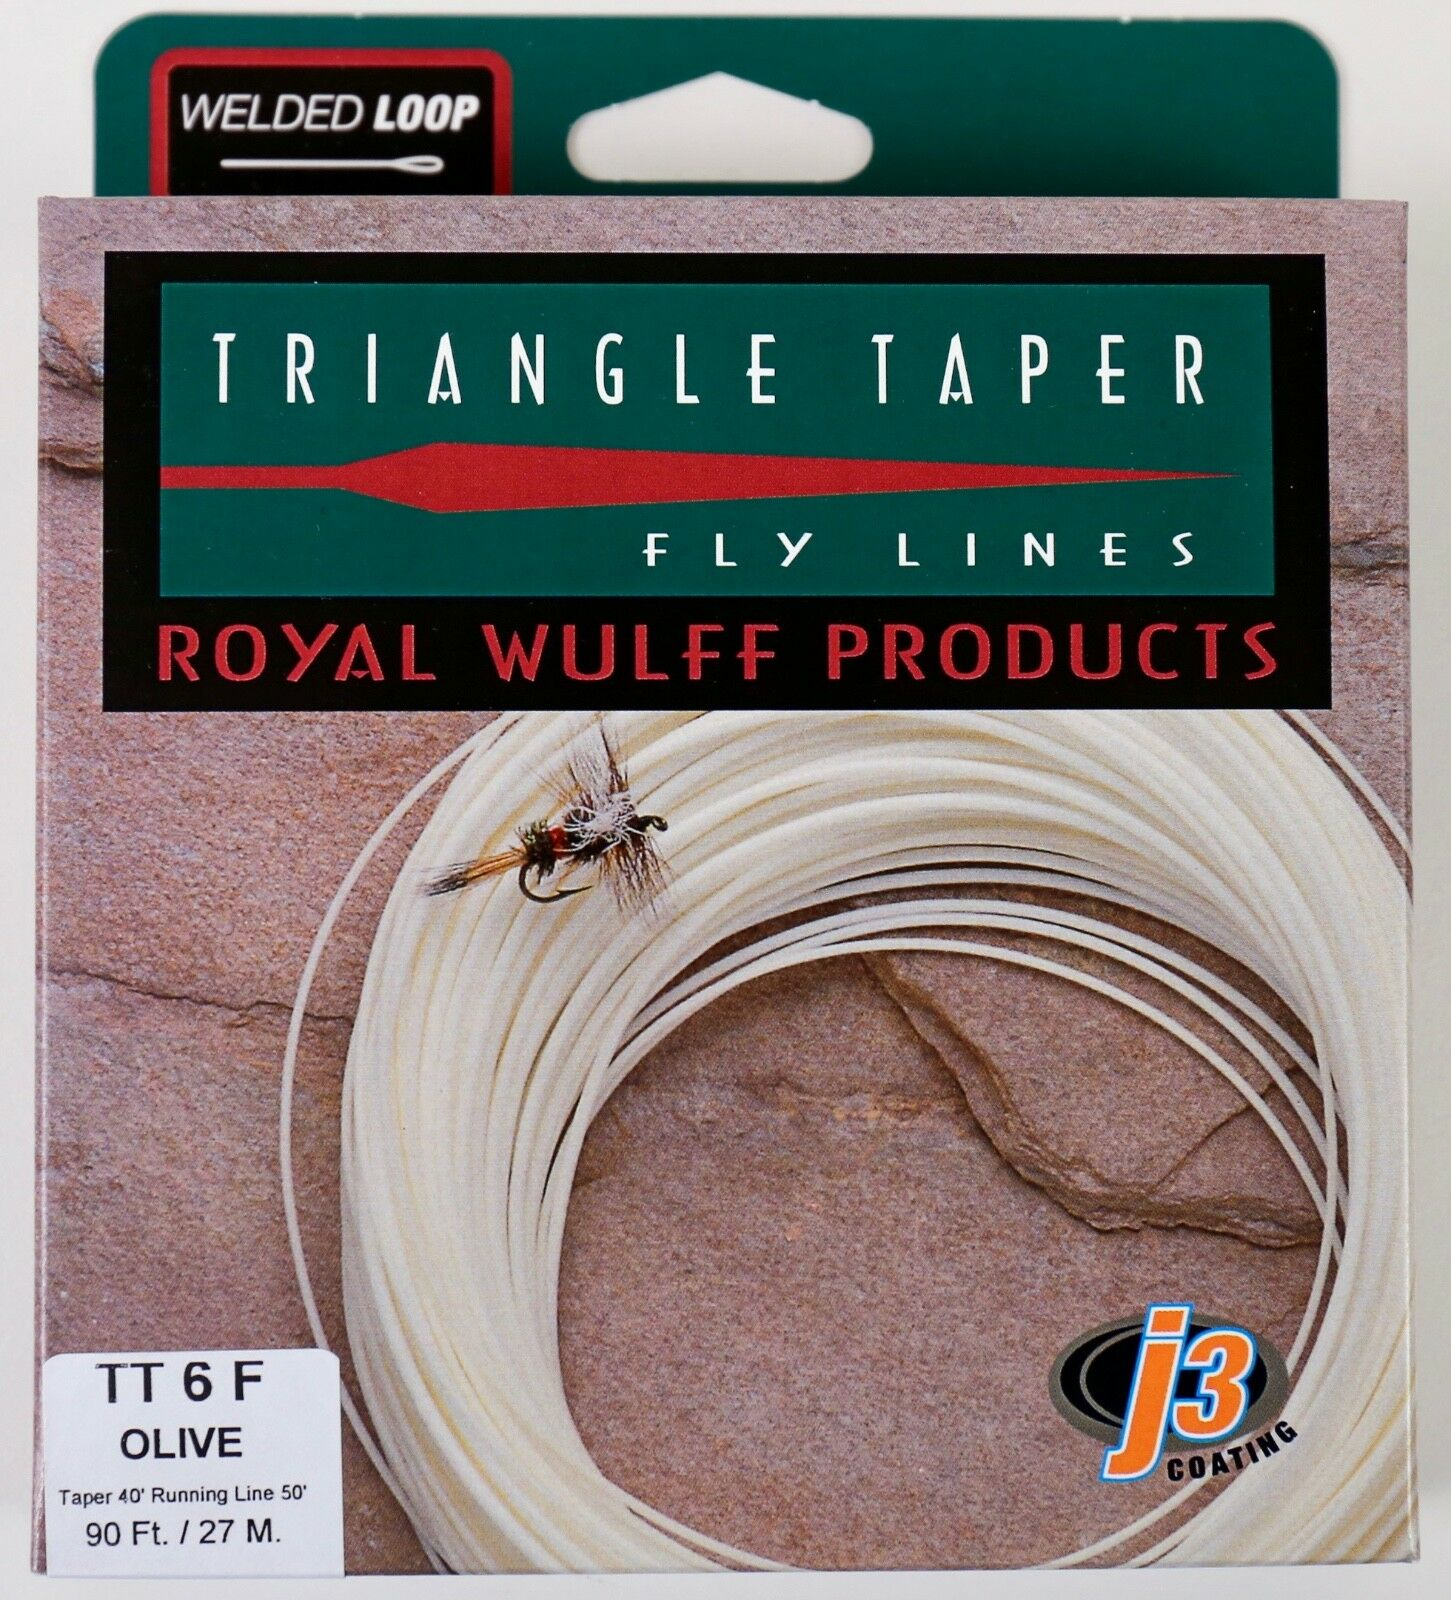 Royal Wulff Triangle Taper 6 WT Floating Fly Line Olive Free Fast Shipping TT6FG